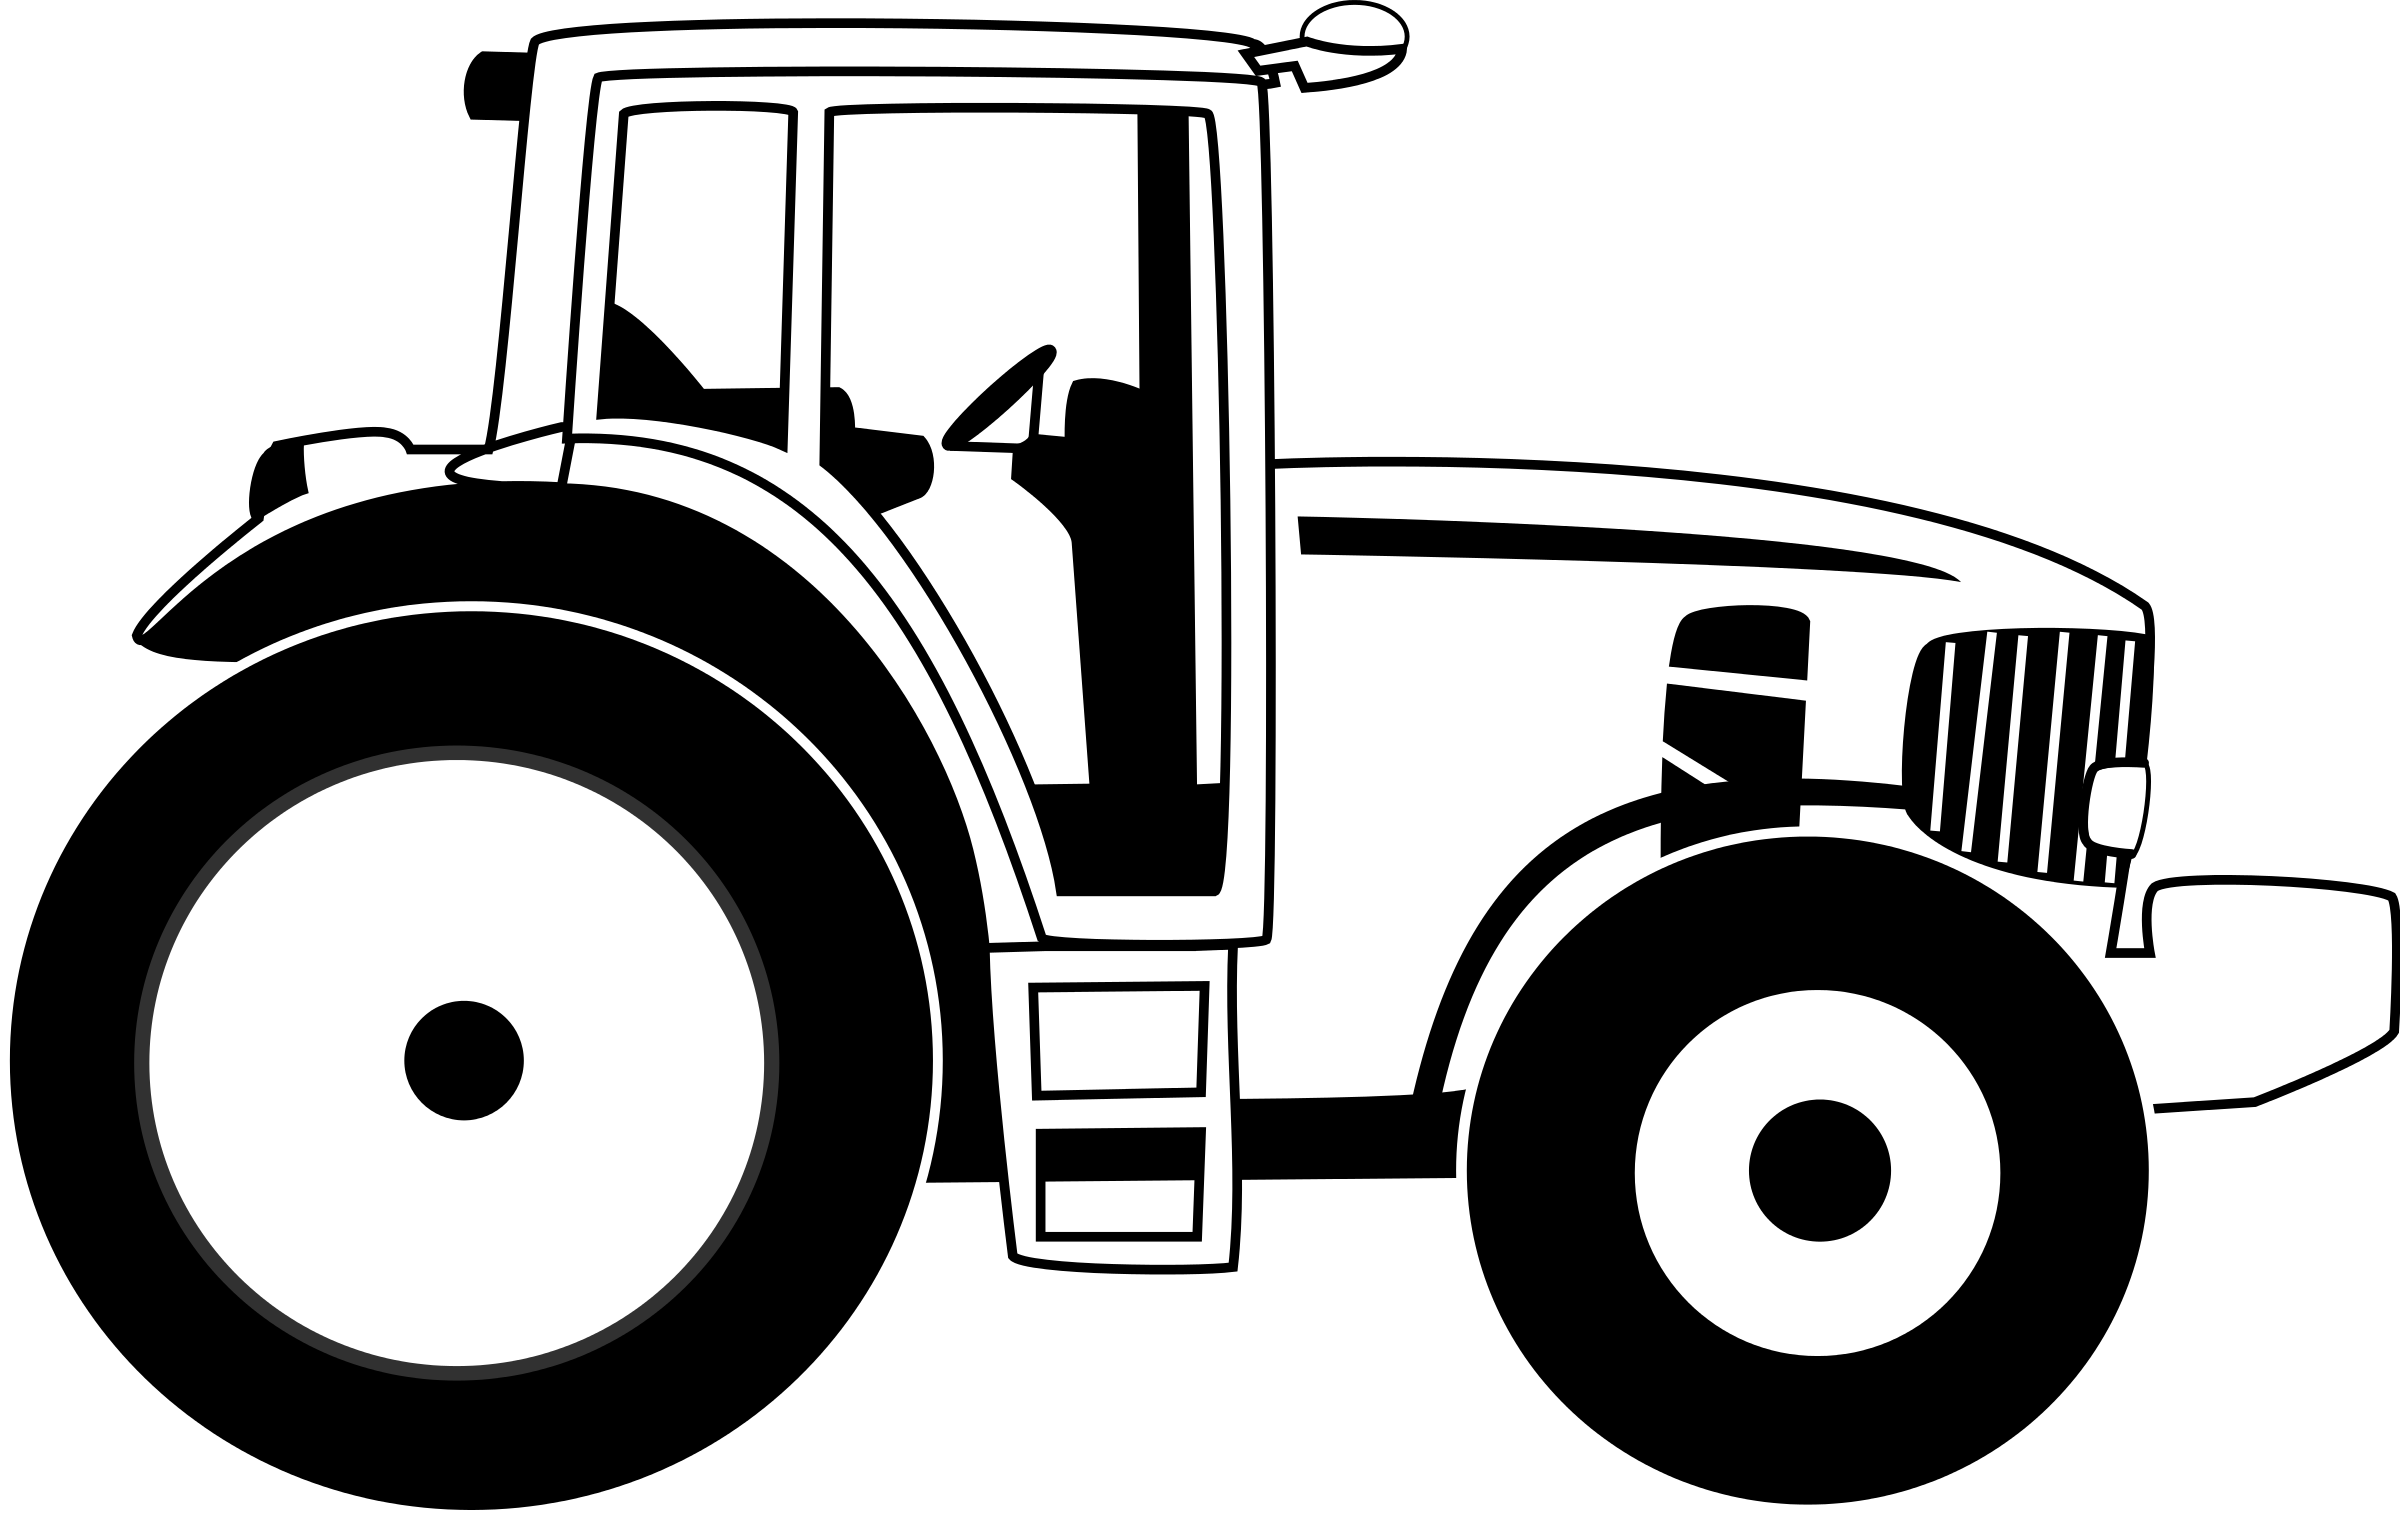 Tractor clipart #10, Download drawings